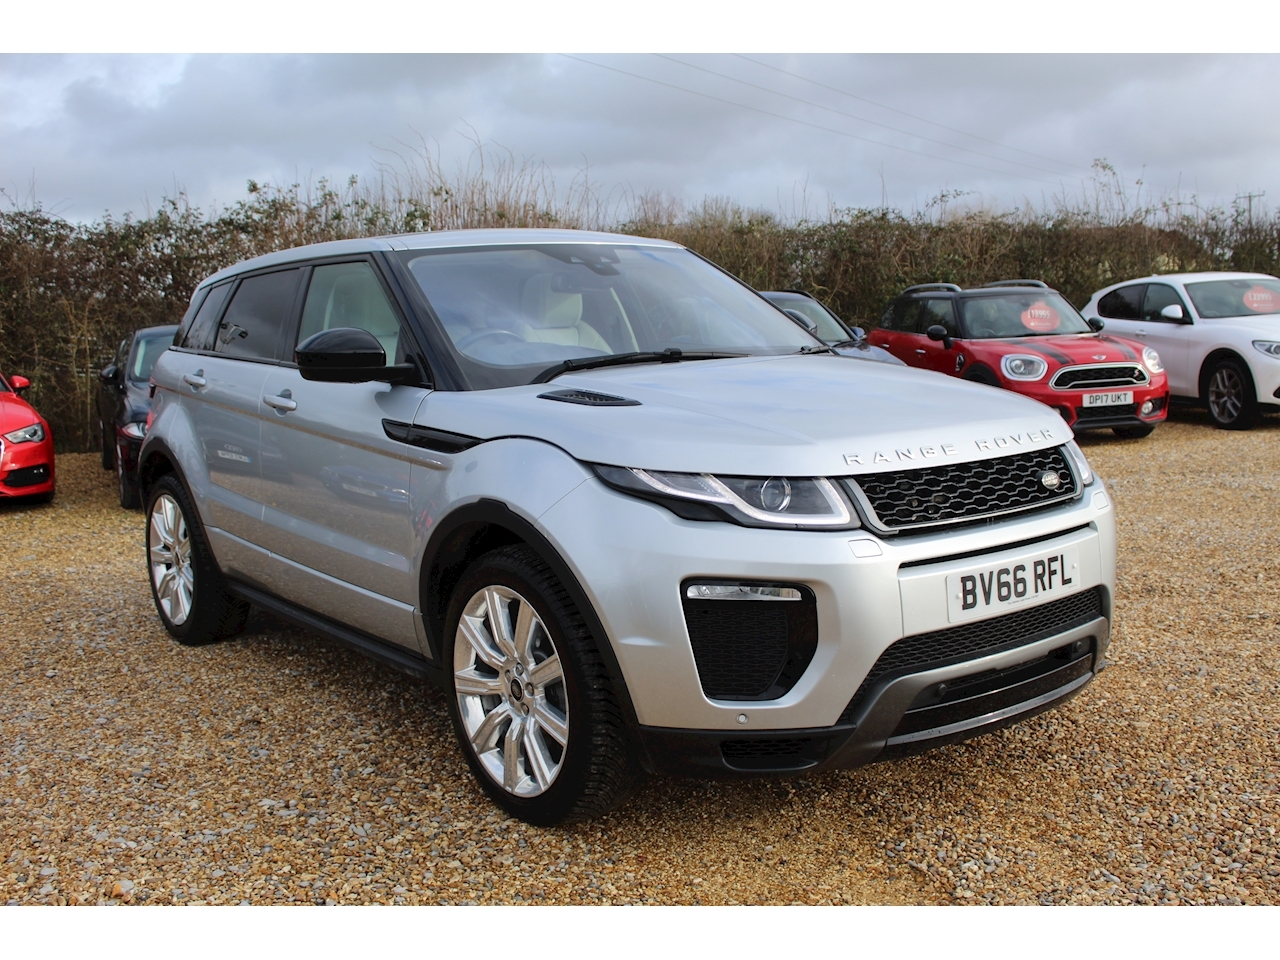 Land Rover 2.0 TD4 HSE Dynamic SUV 5dr Diesel Auto 4WD (s/s) (180 ps)